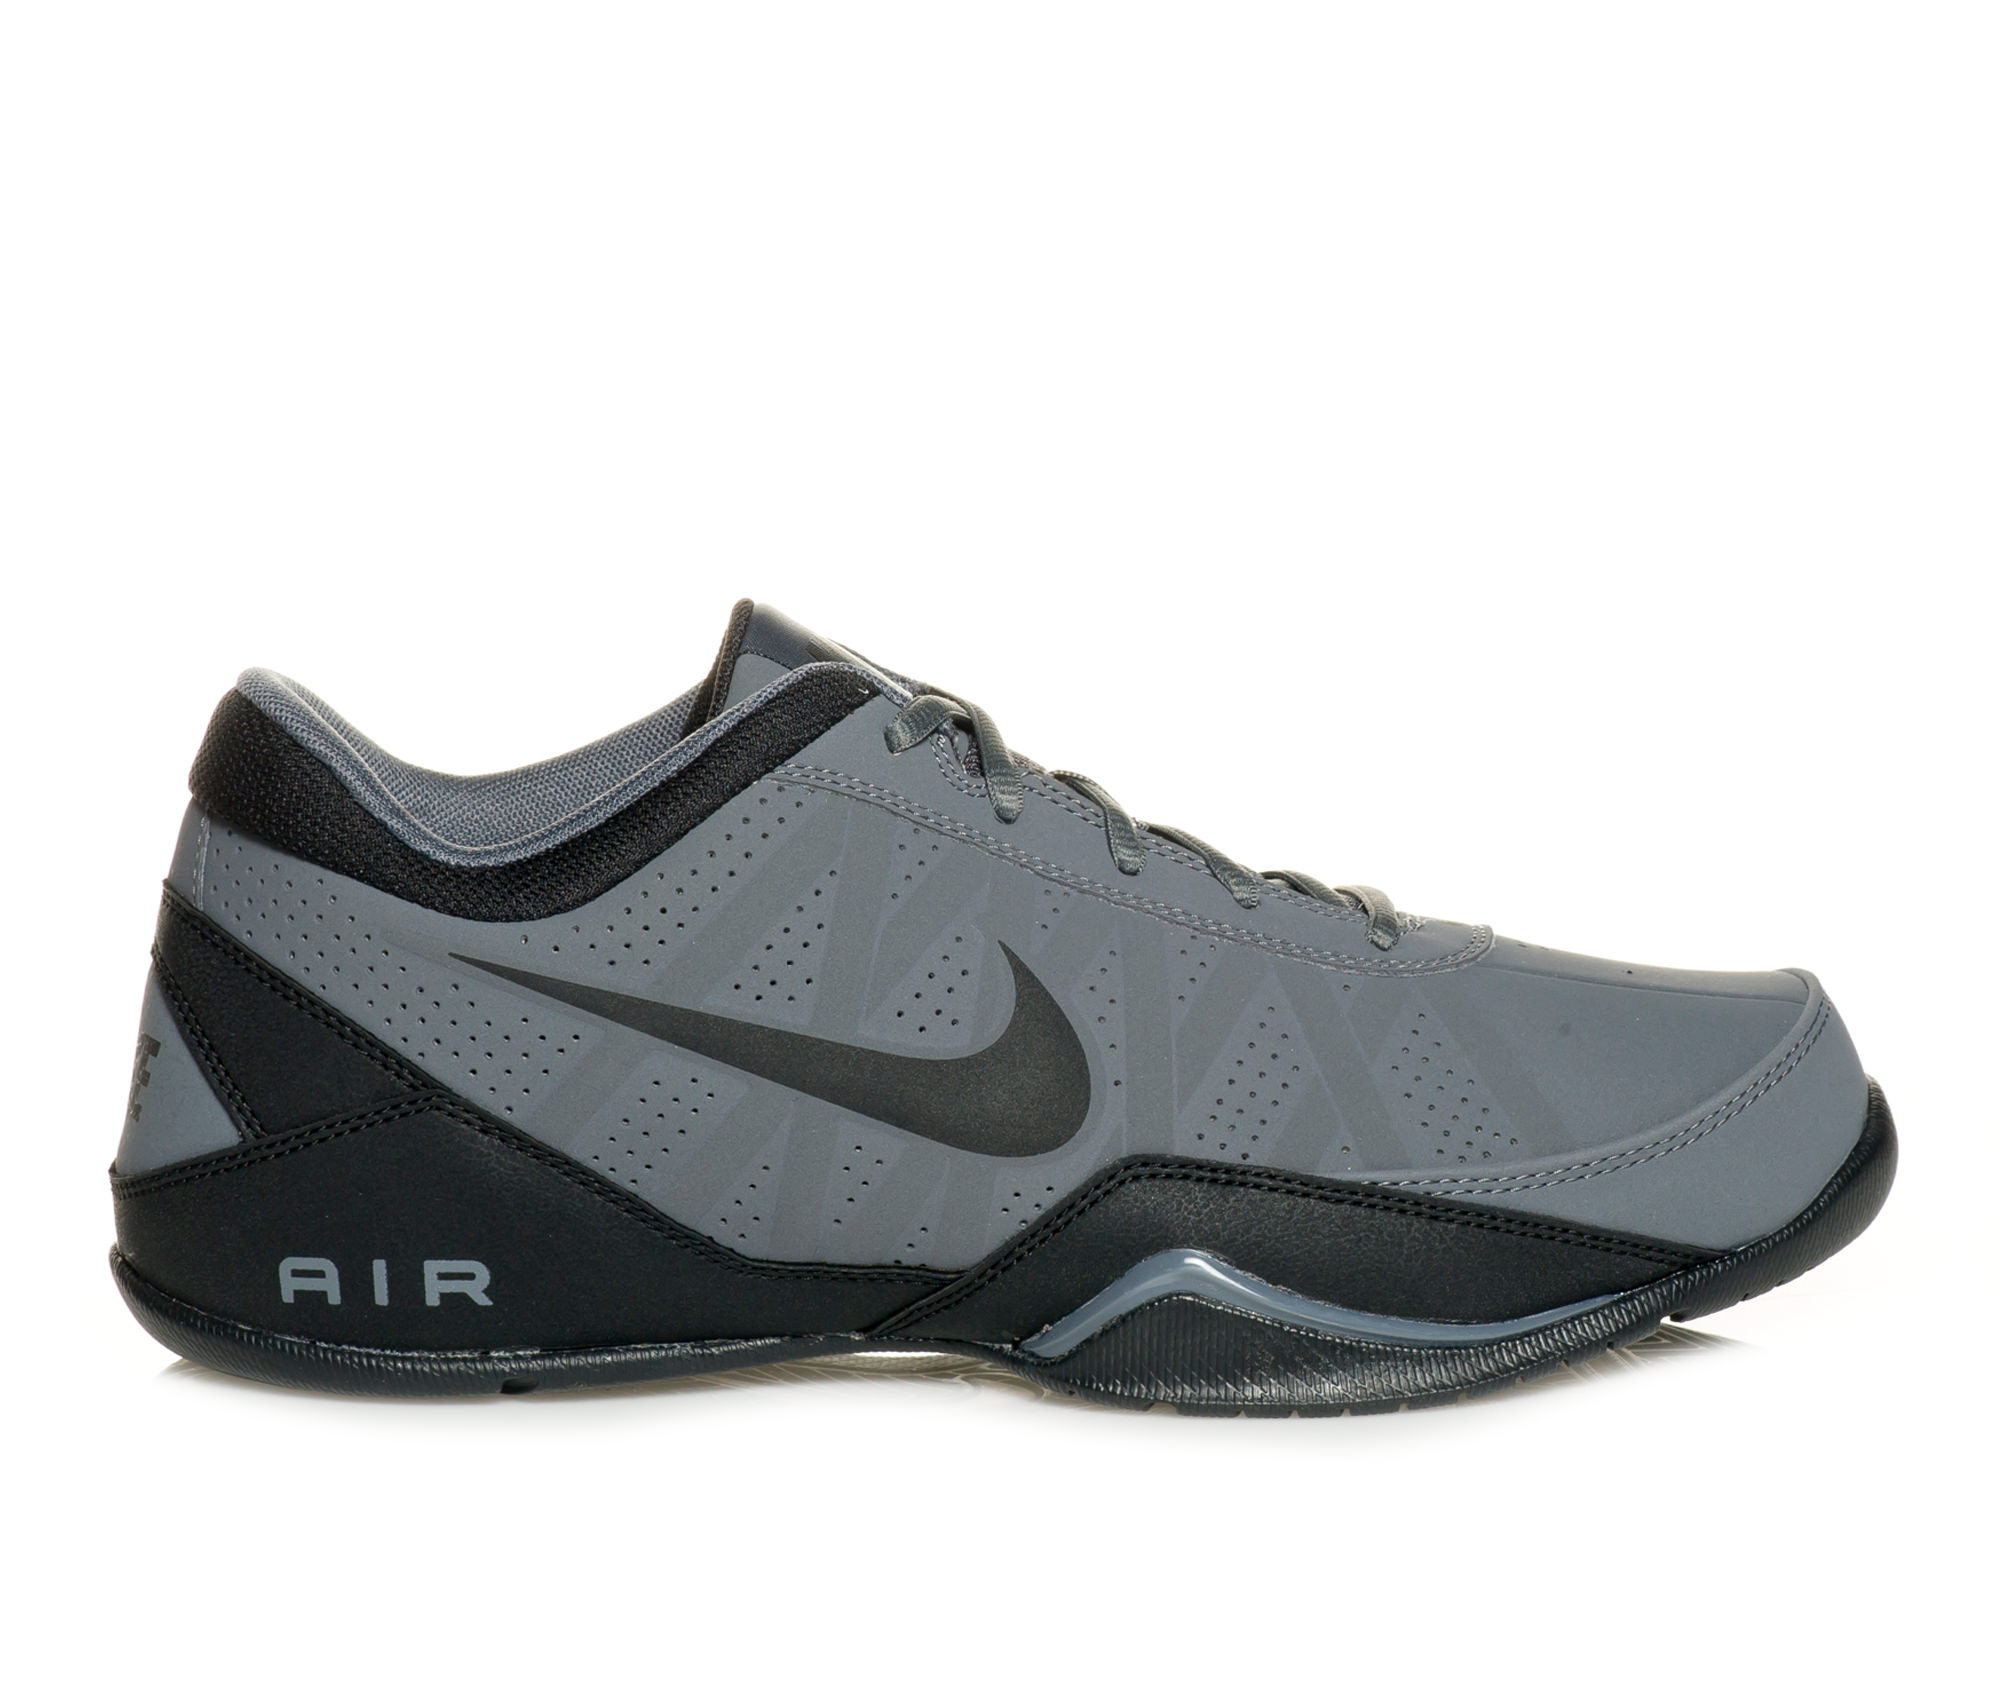 Nike Air Ring Leader Low Basketball Shoes